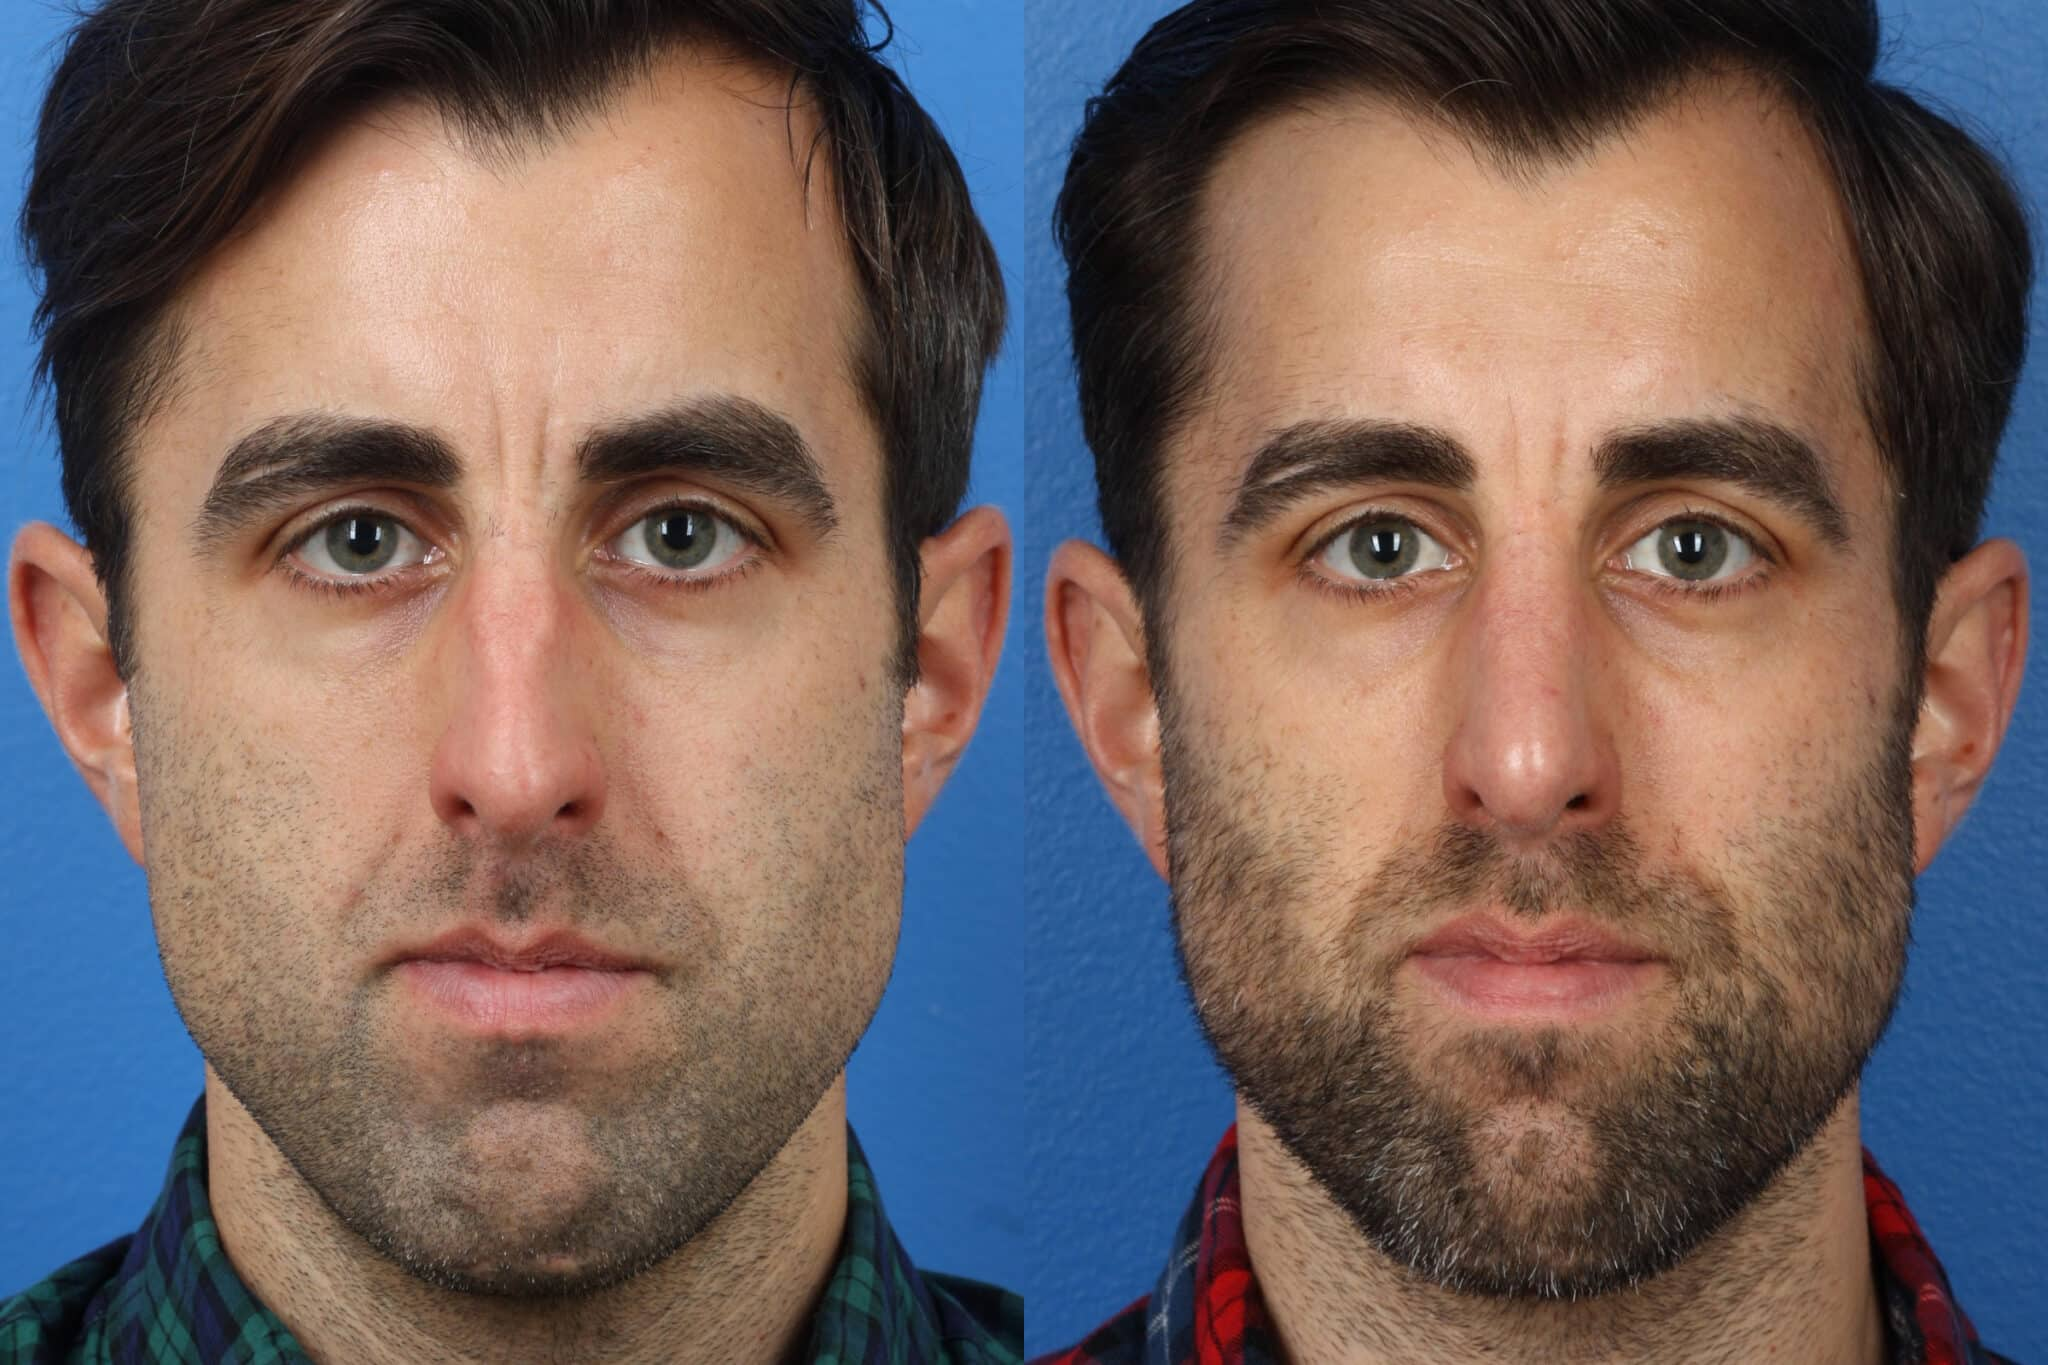 Rhinoplasty to Correct the Nasal Bridge of a Male Patient by Dr. Miller